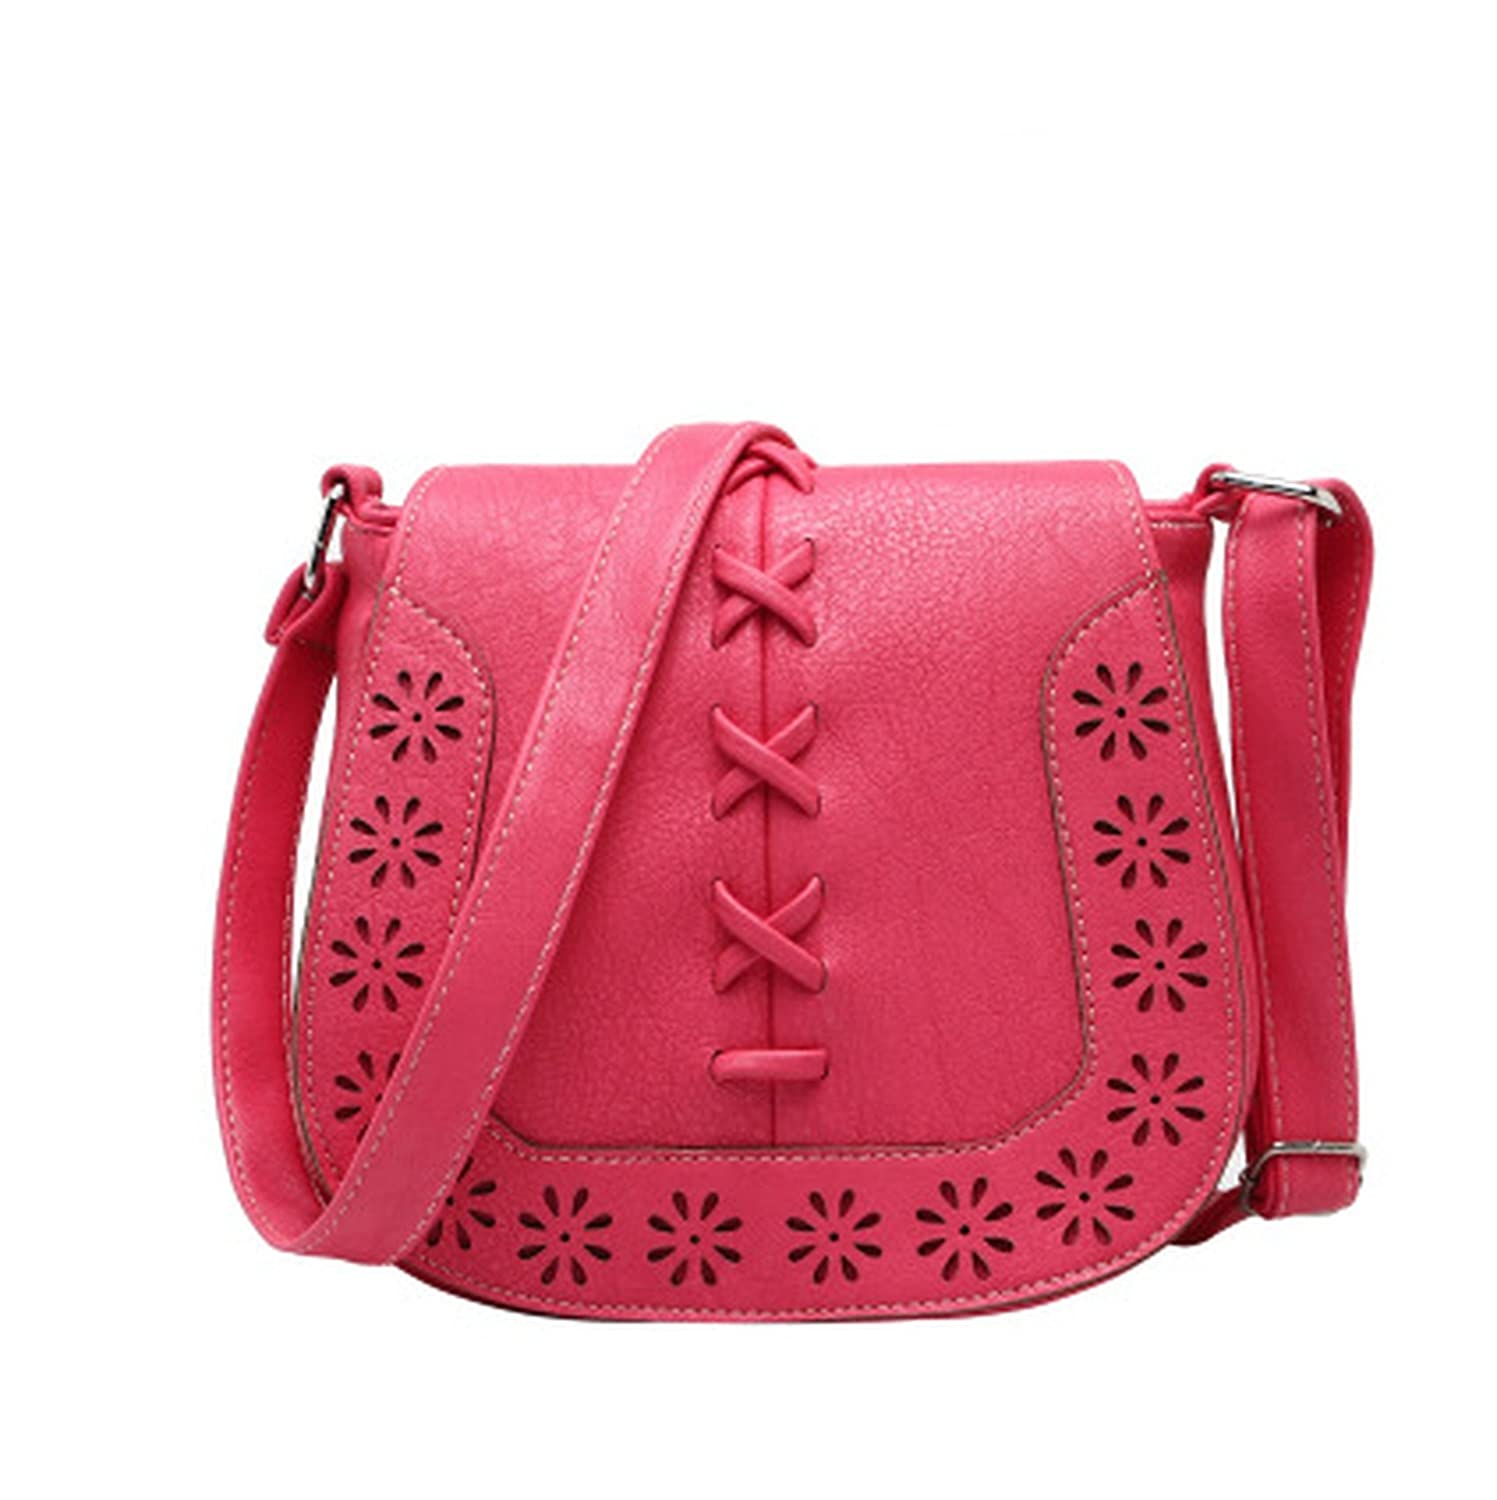 Leving Wallets ACCESSORY レディース B07DLNQC59 スイカレッド One Size